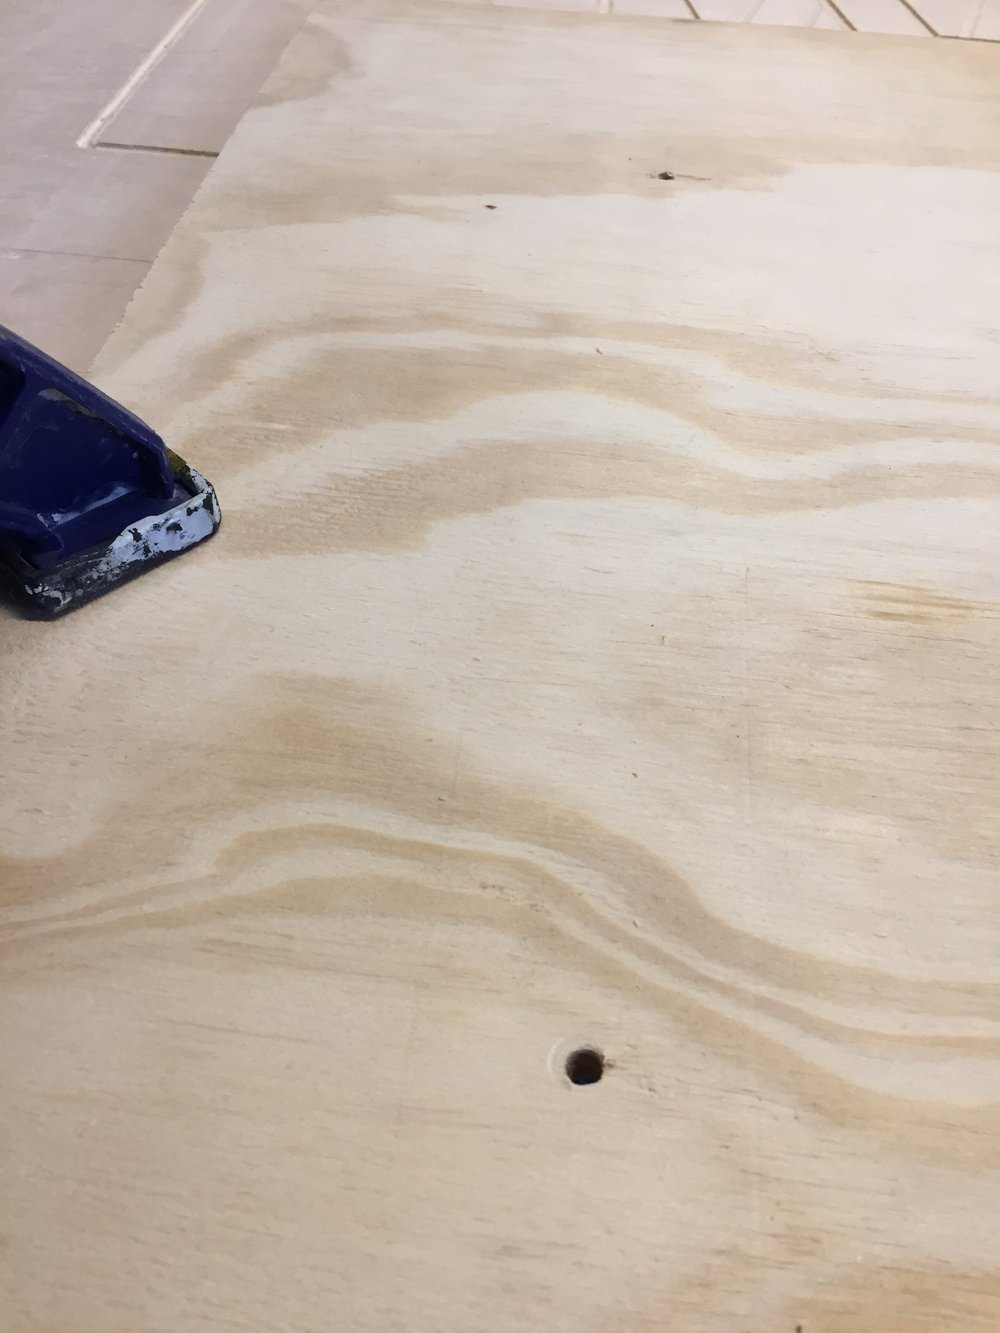 Drilled center holes